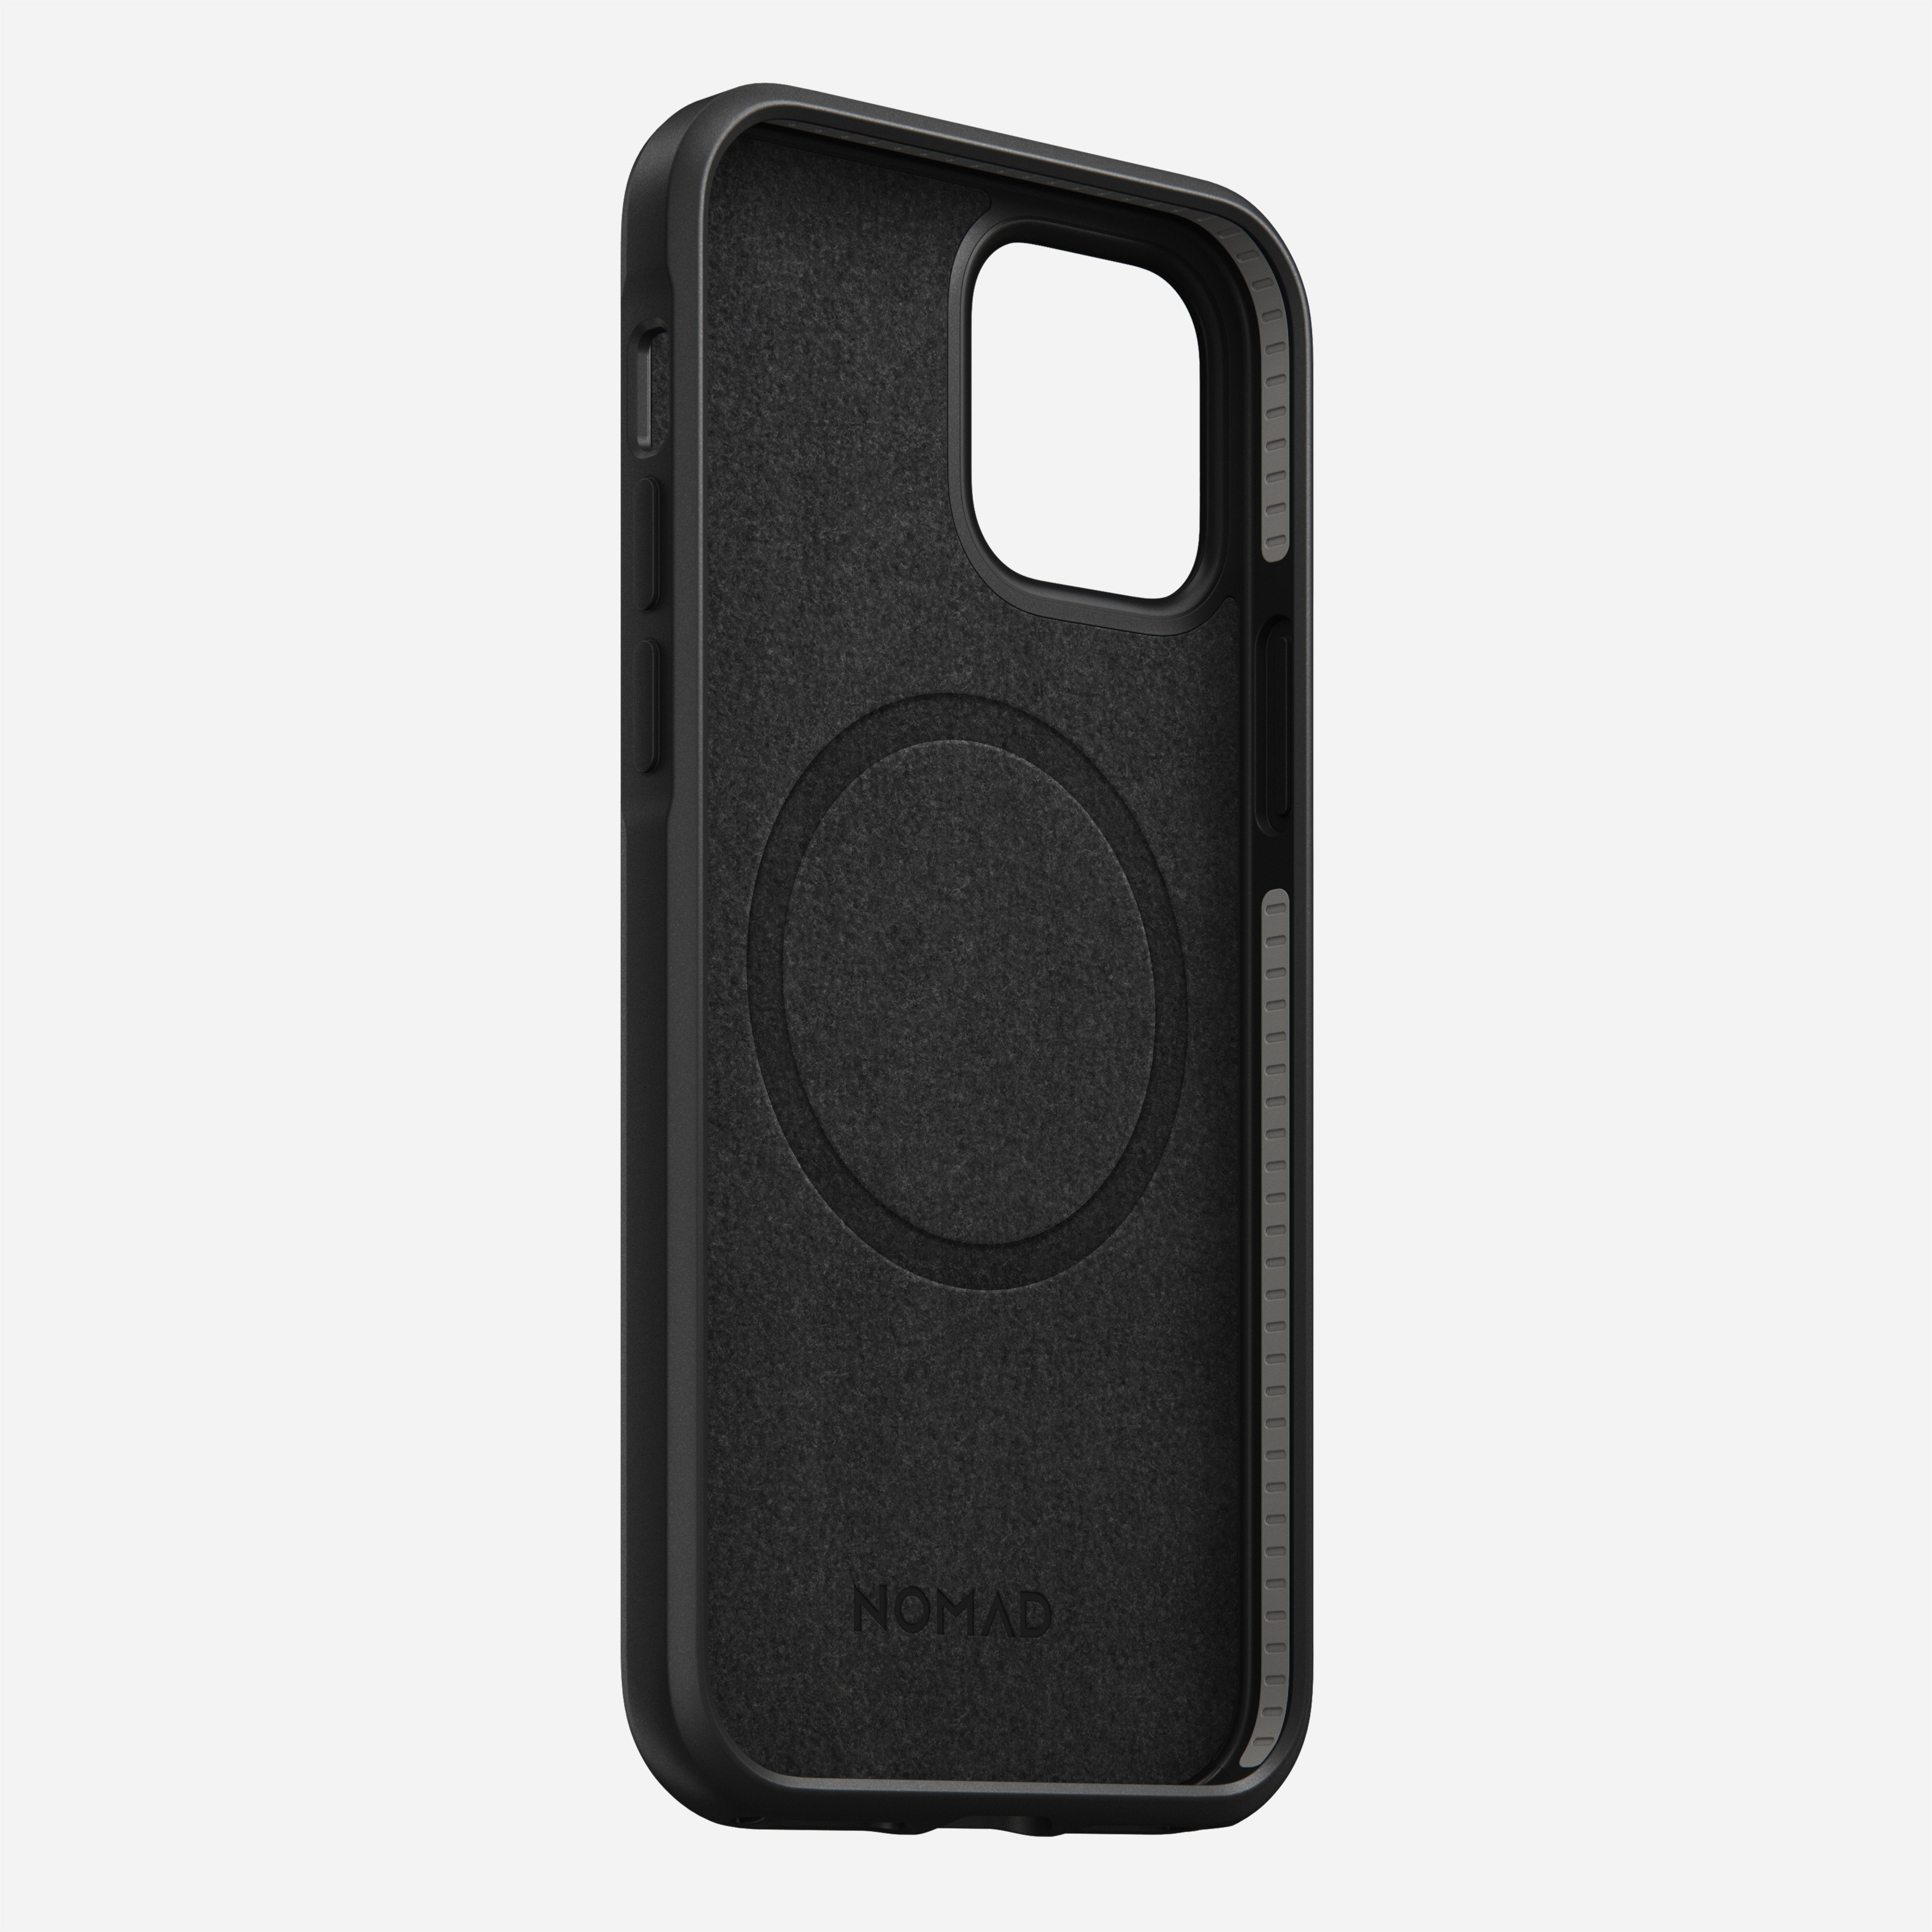 Rugged case magsafe horween leather black iphone 12 pro